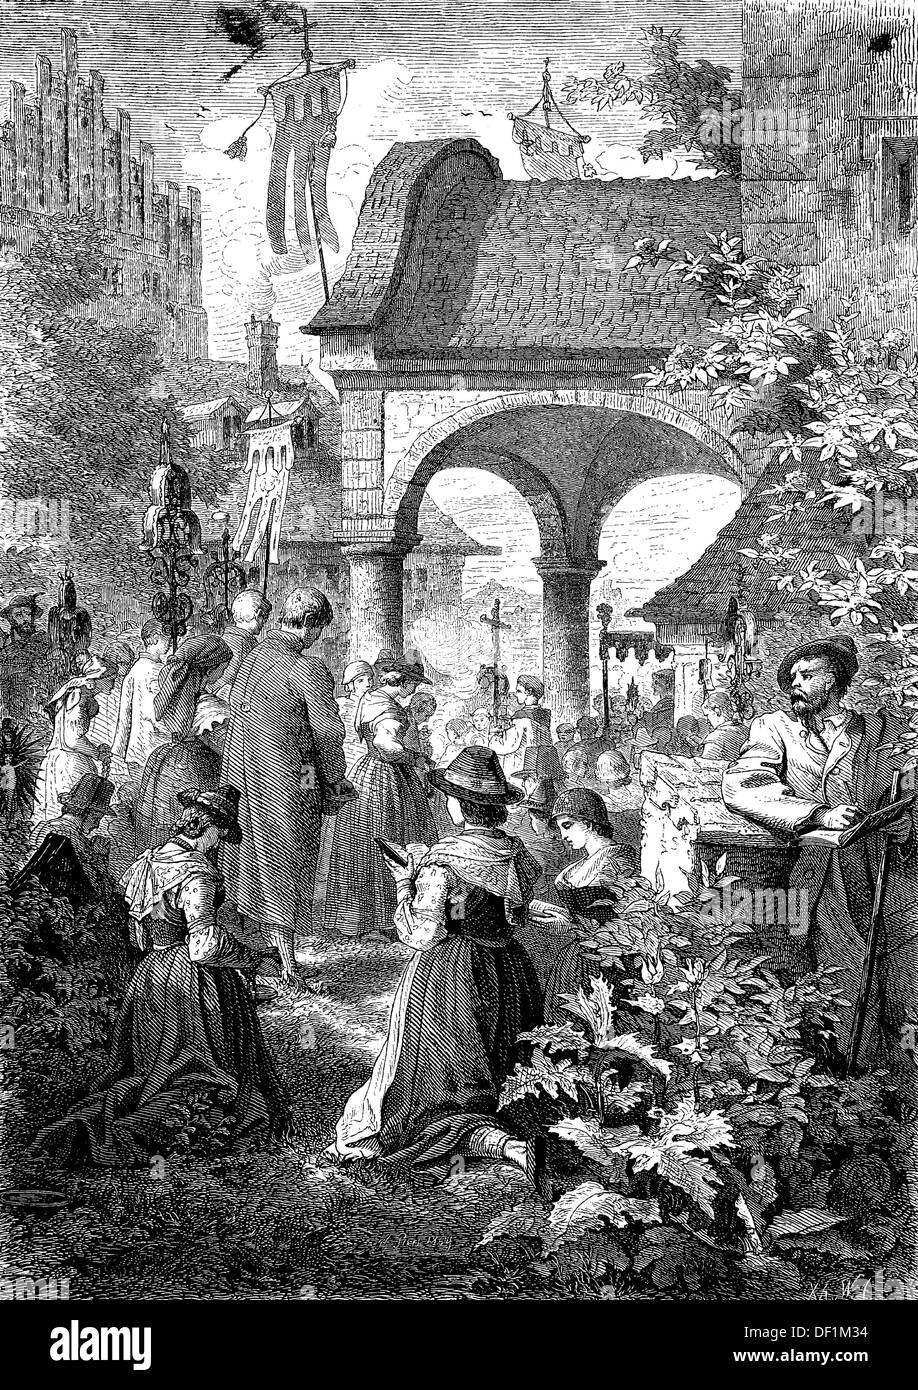 Corpus Christi procession in Brannenburg, Bavaria, Germany, woodcut from 1864 - Stock Image